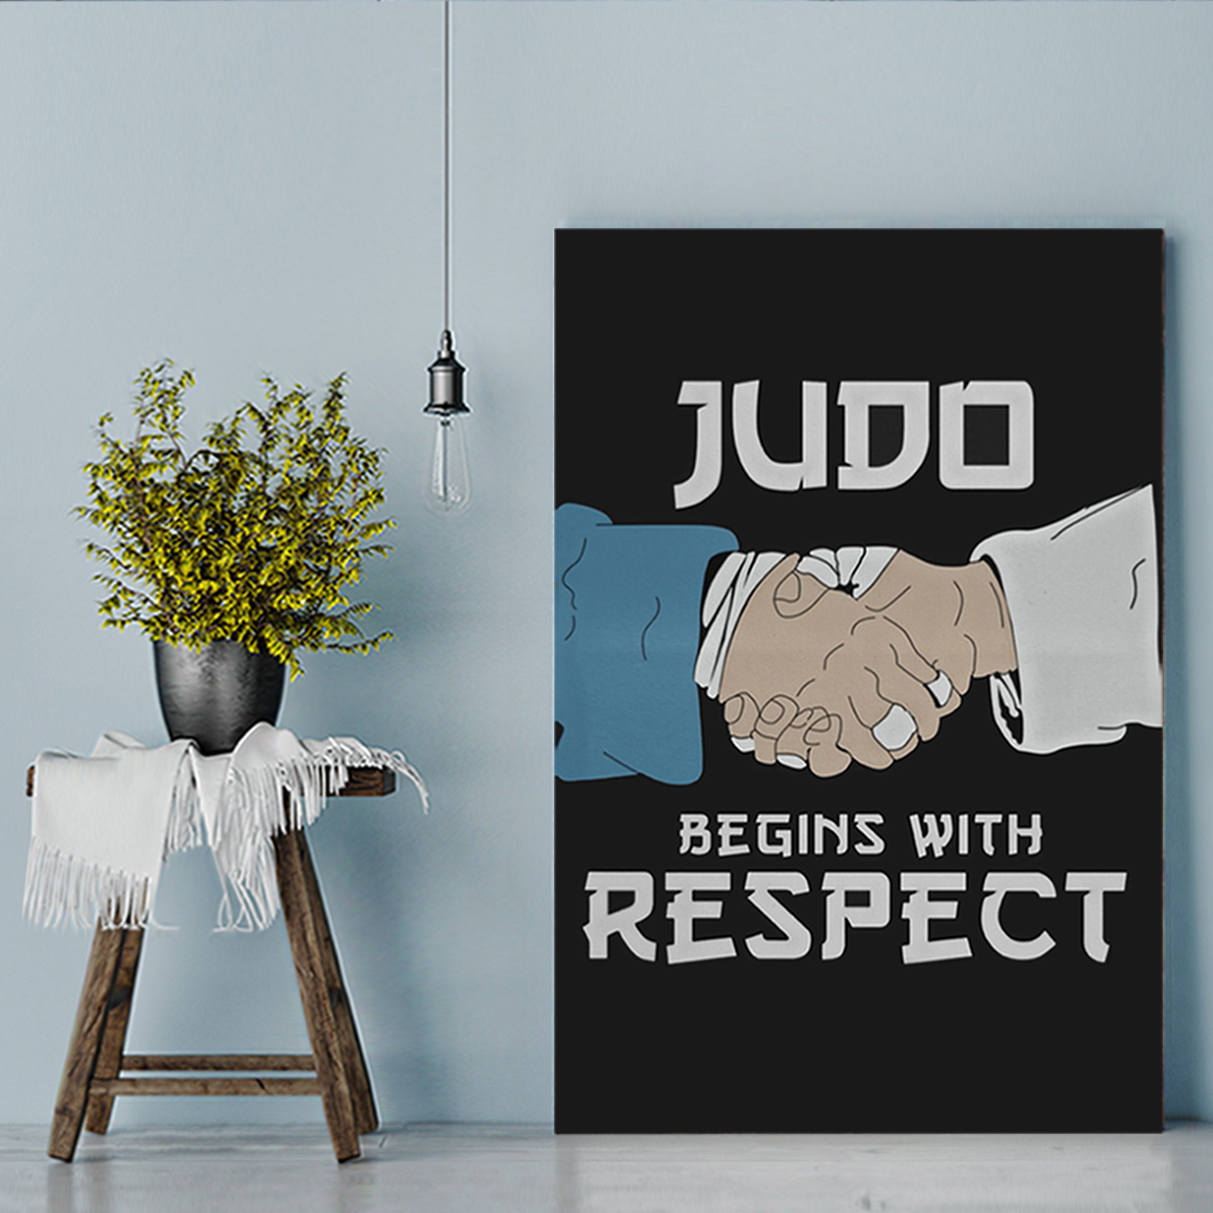 Judo begins with respect canvas prints large